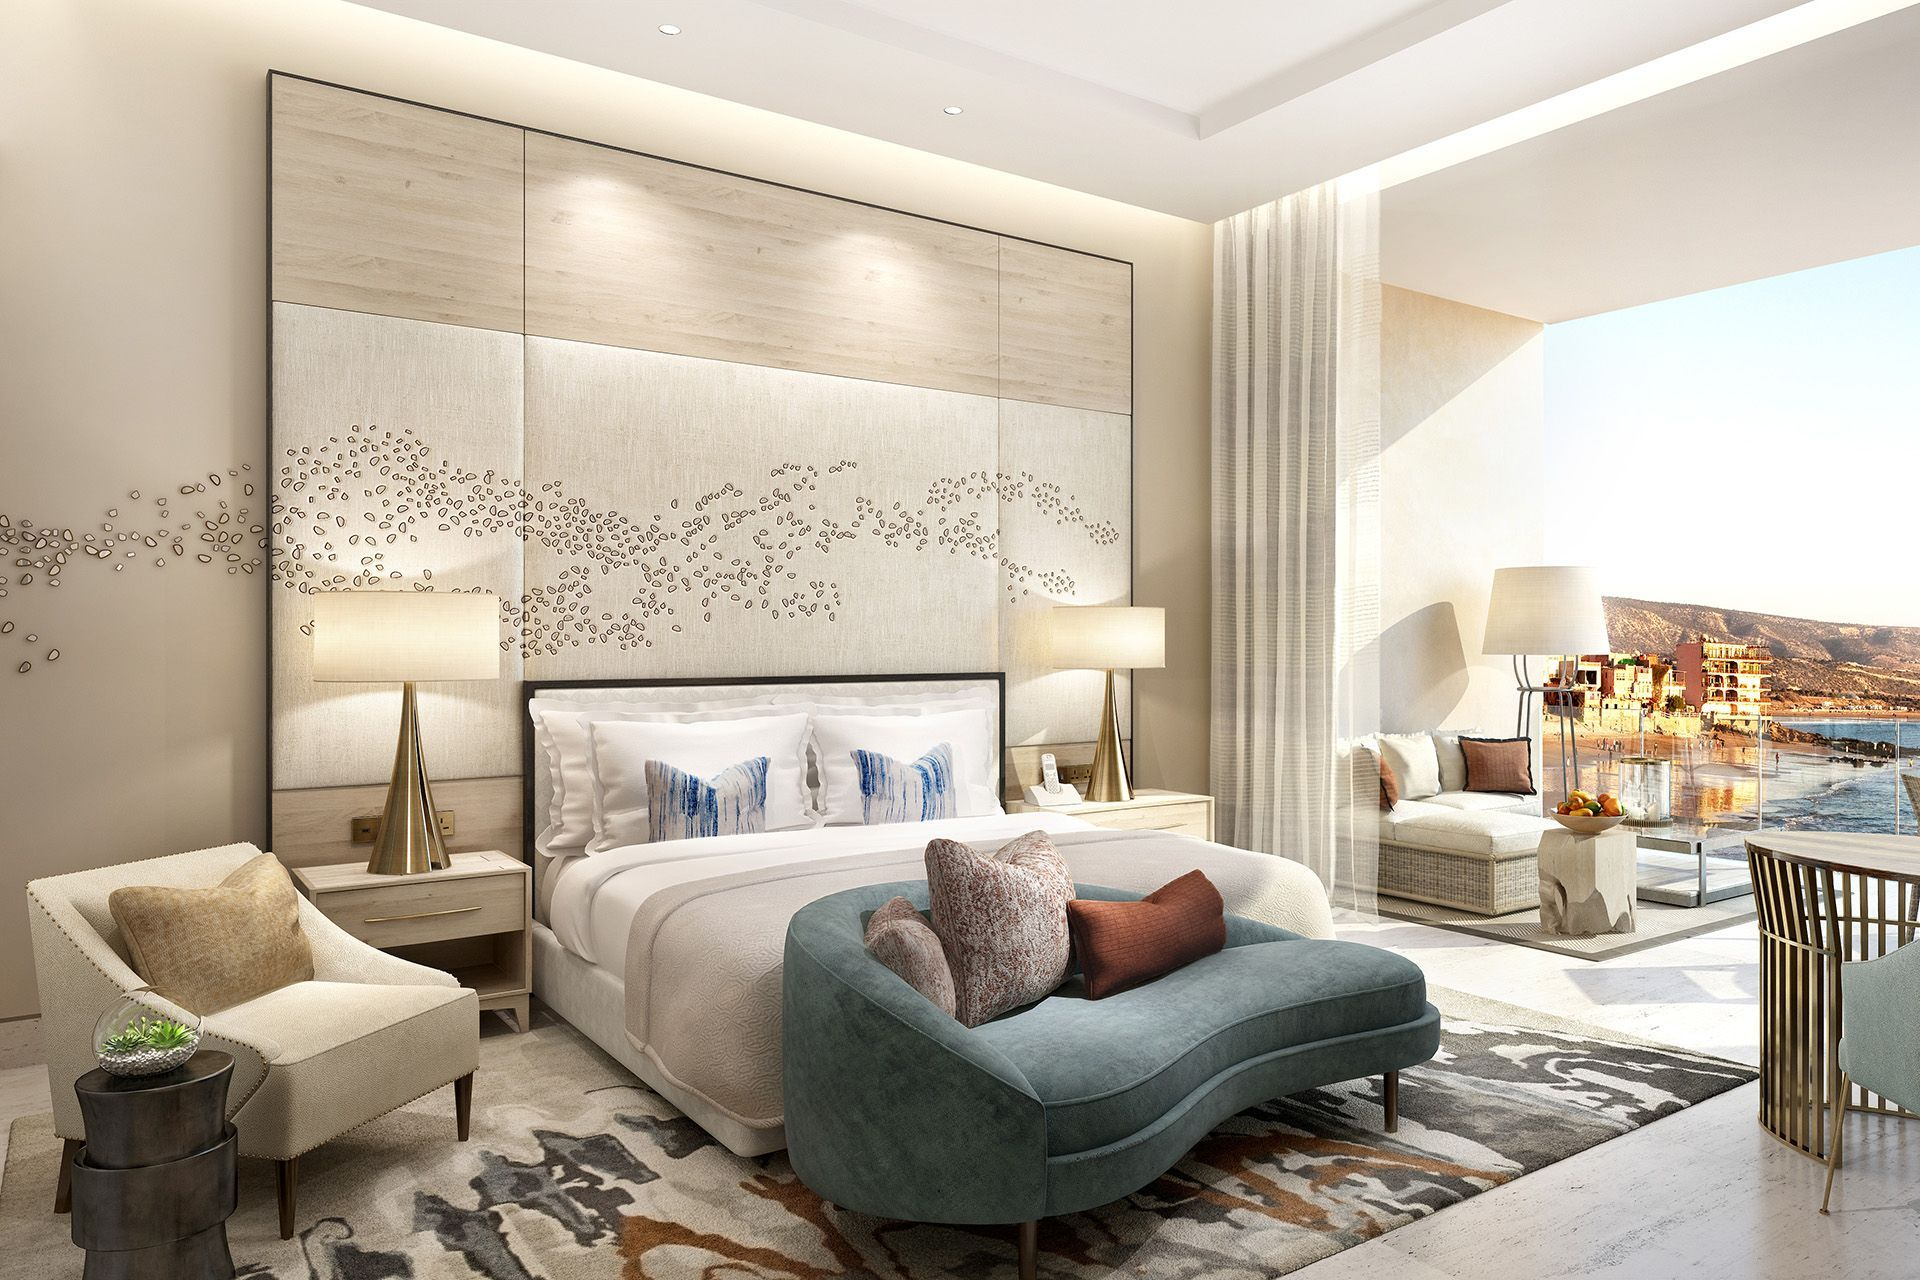 Four seasons taghazout interior designers wimberly for Modern romantic interior design